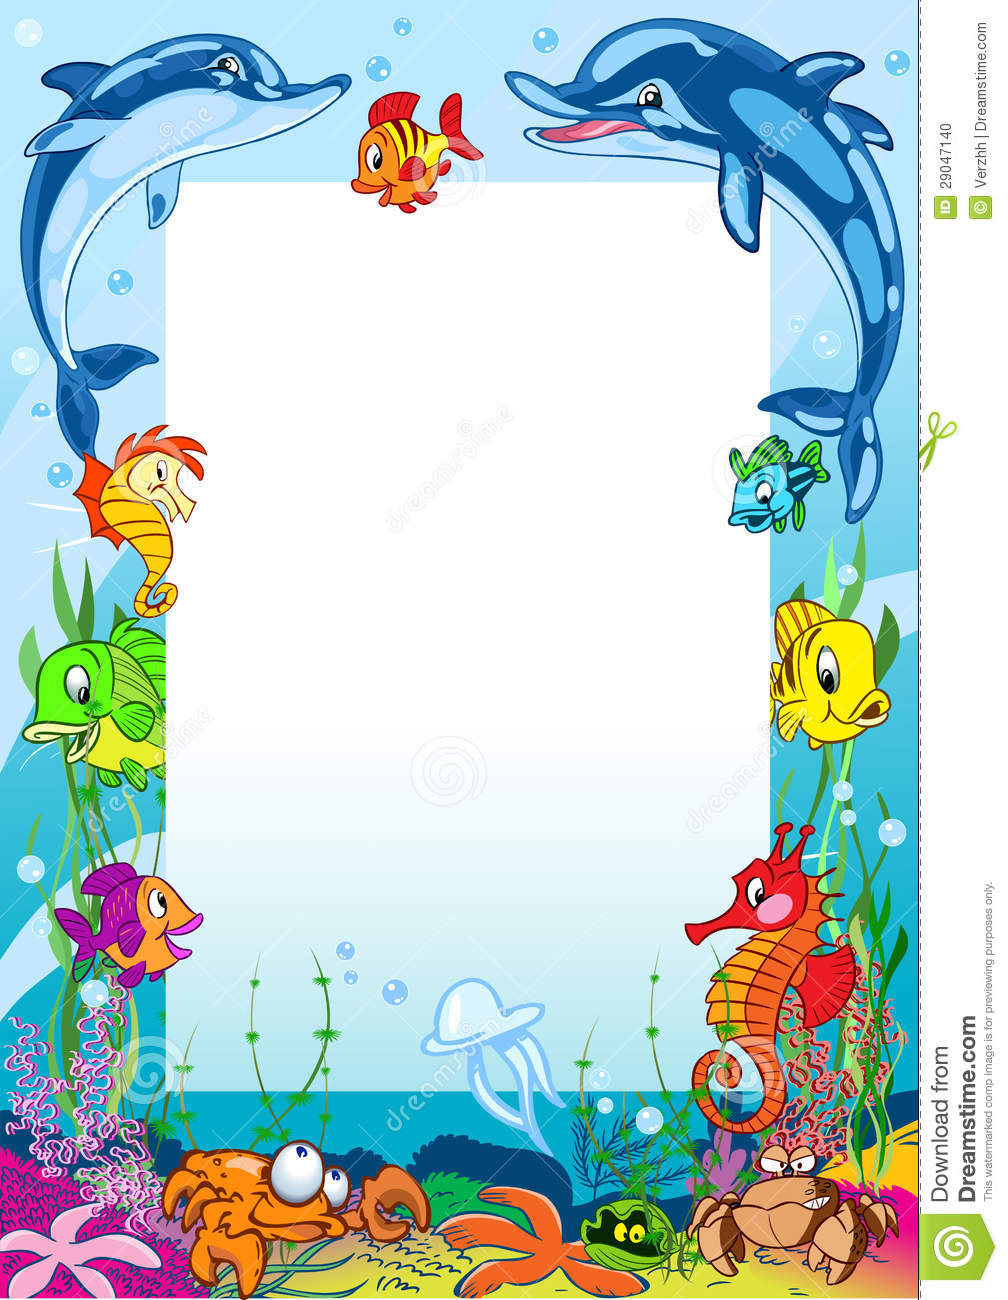 Garden gate plans - Frame With Various Sea Animals Stock Photo Image 29047140